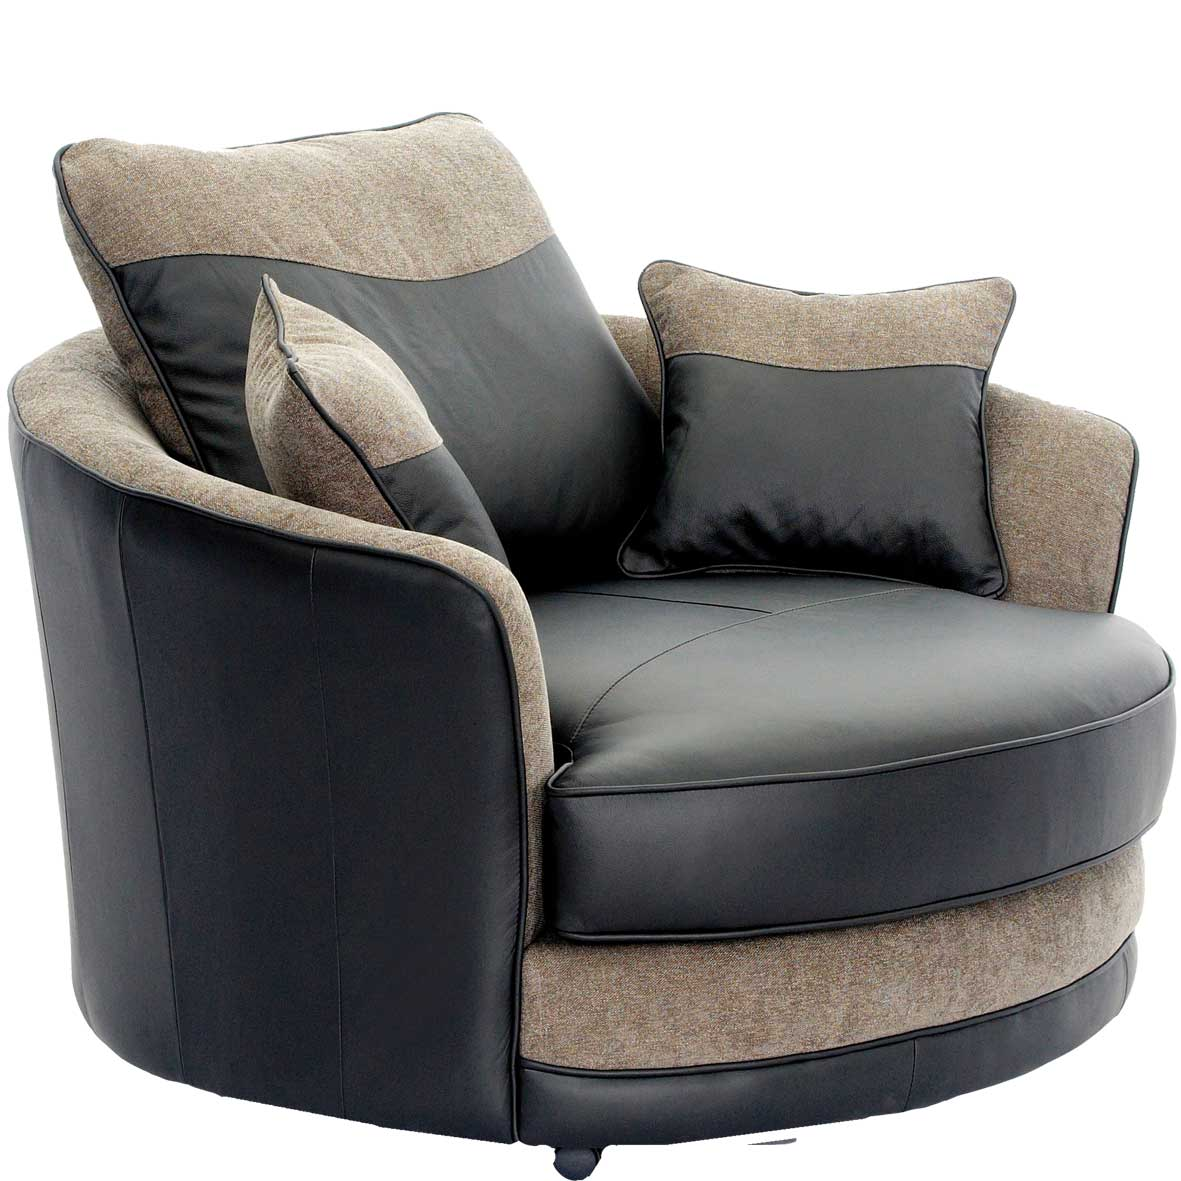 Constellation dark brown swivel tub chair